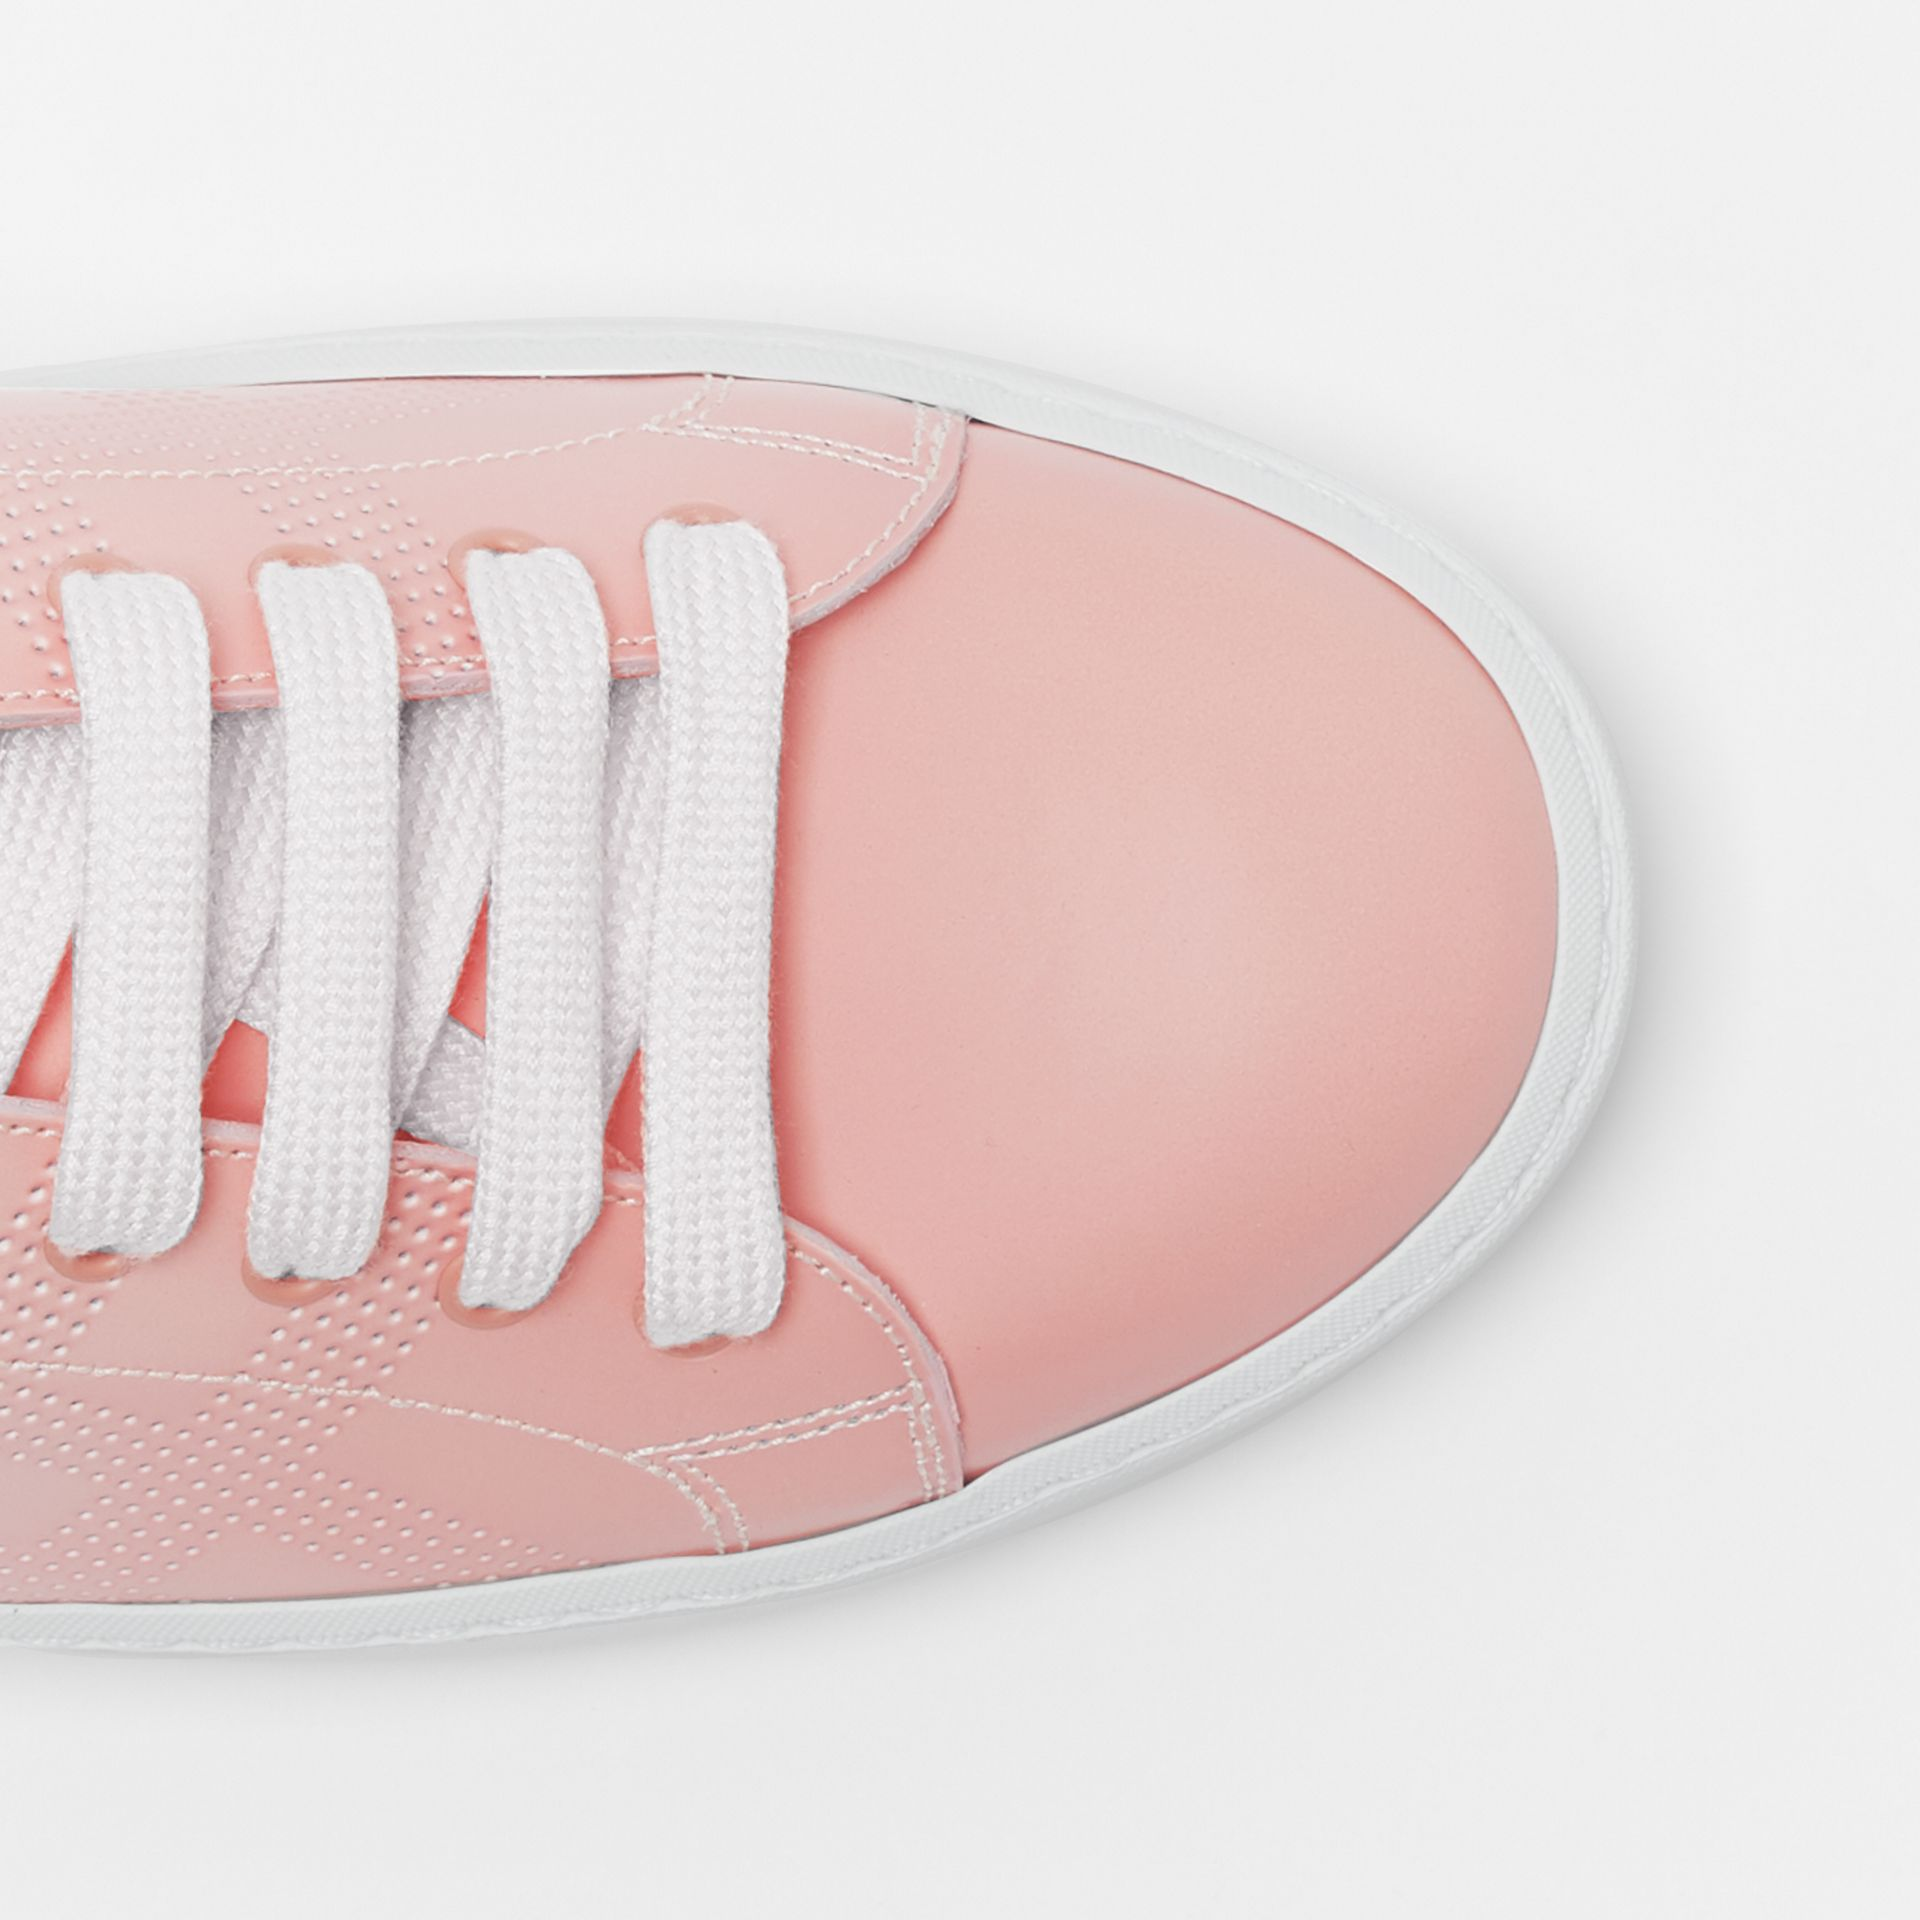 Perforated Check Dégradé Leather Sneakers in Sugar Pink - Women | Burberry - gallery image 3